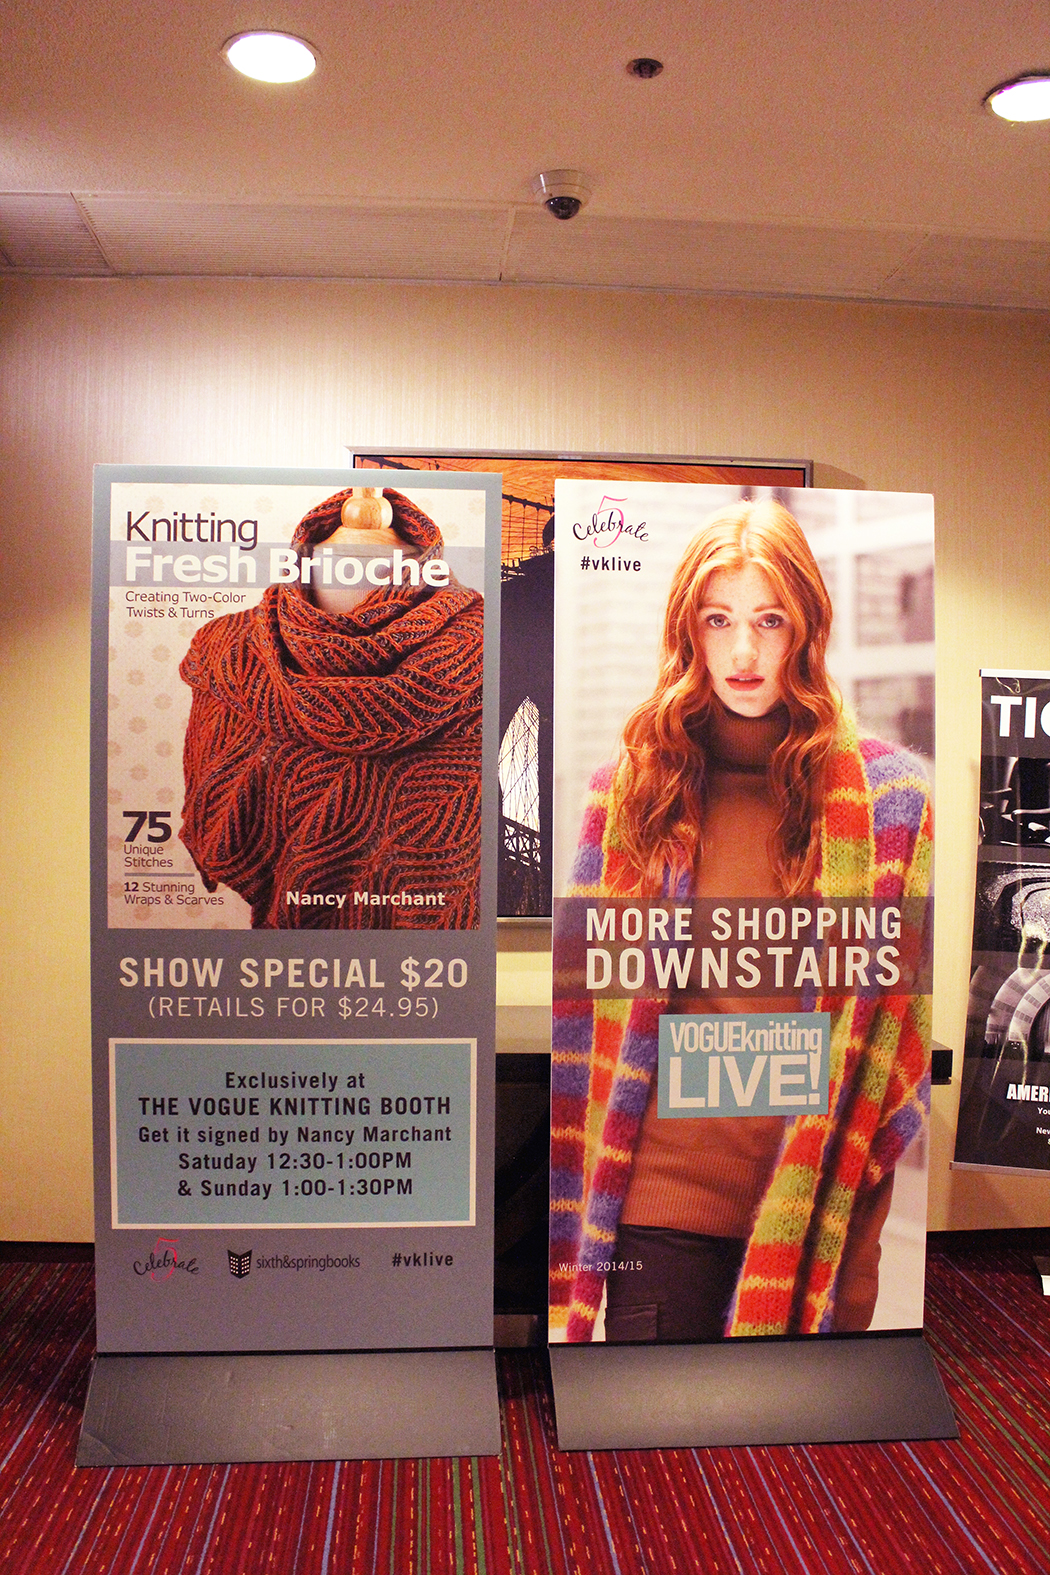 Crocheting Classes Nyc : Vogue Knitting Live-New York City 2015, Fun, Fiber, & Fashion in the ...